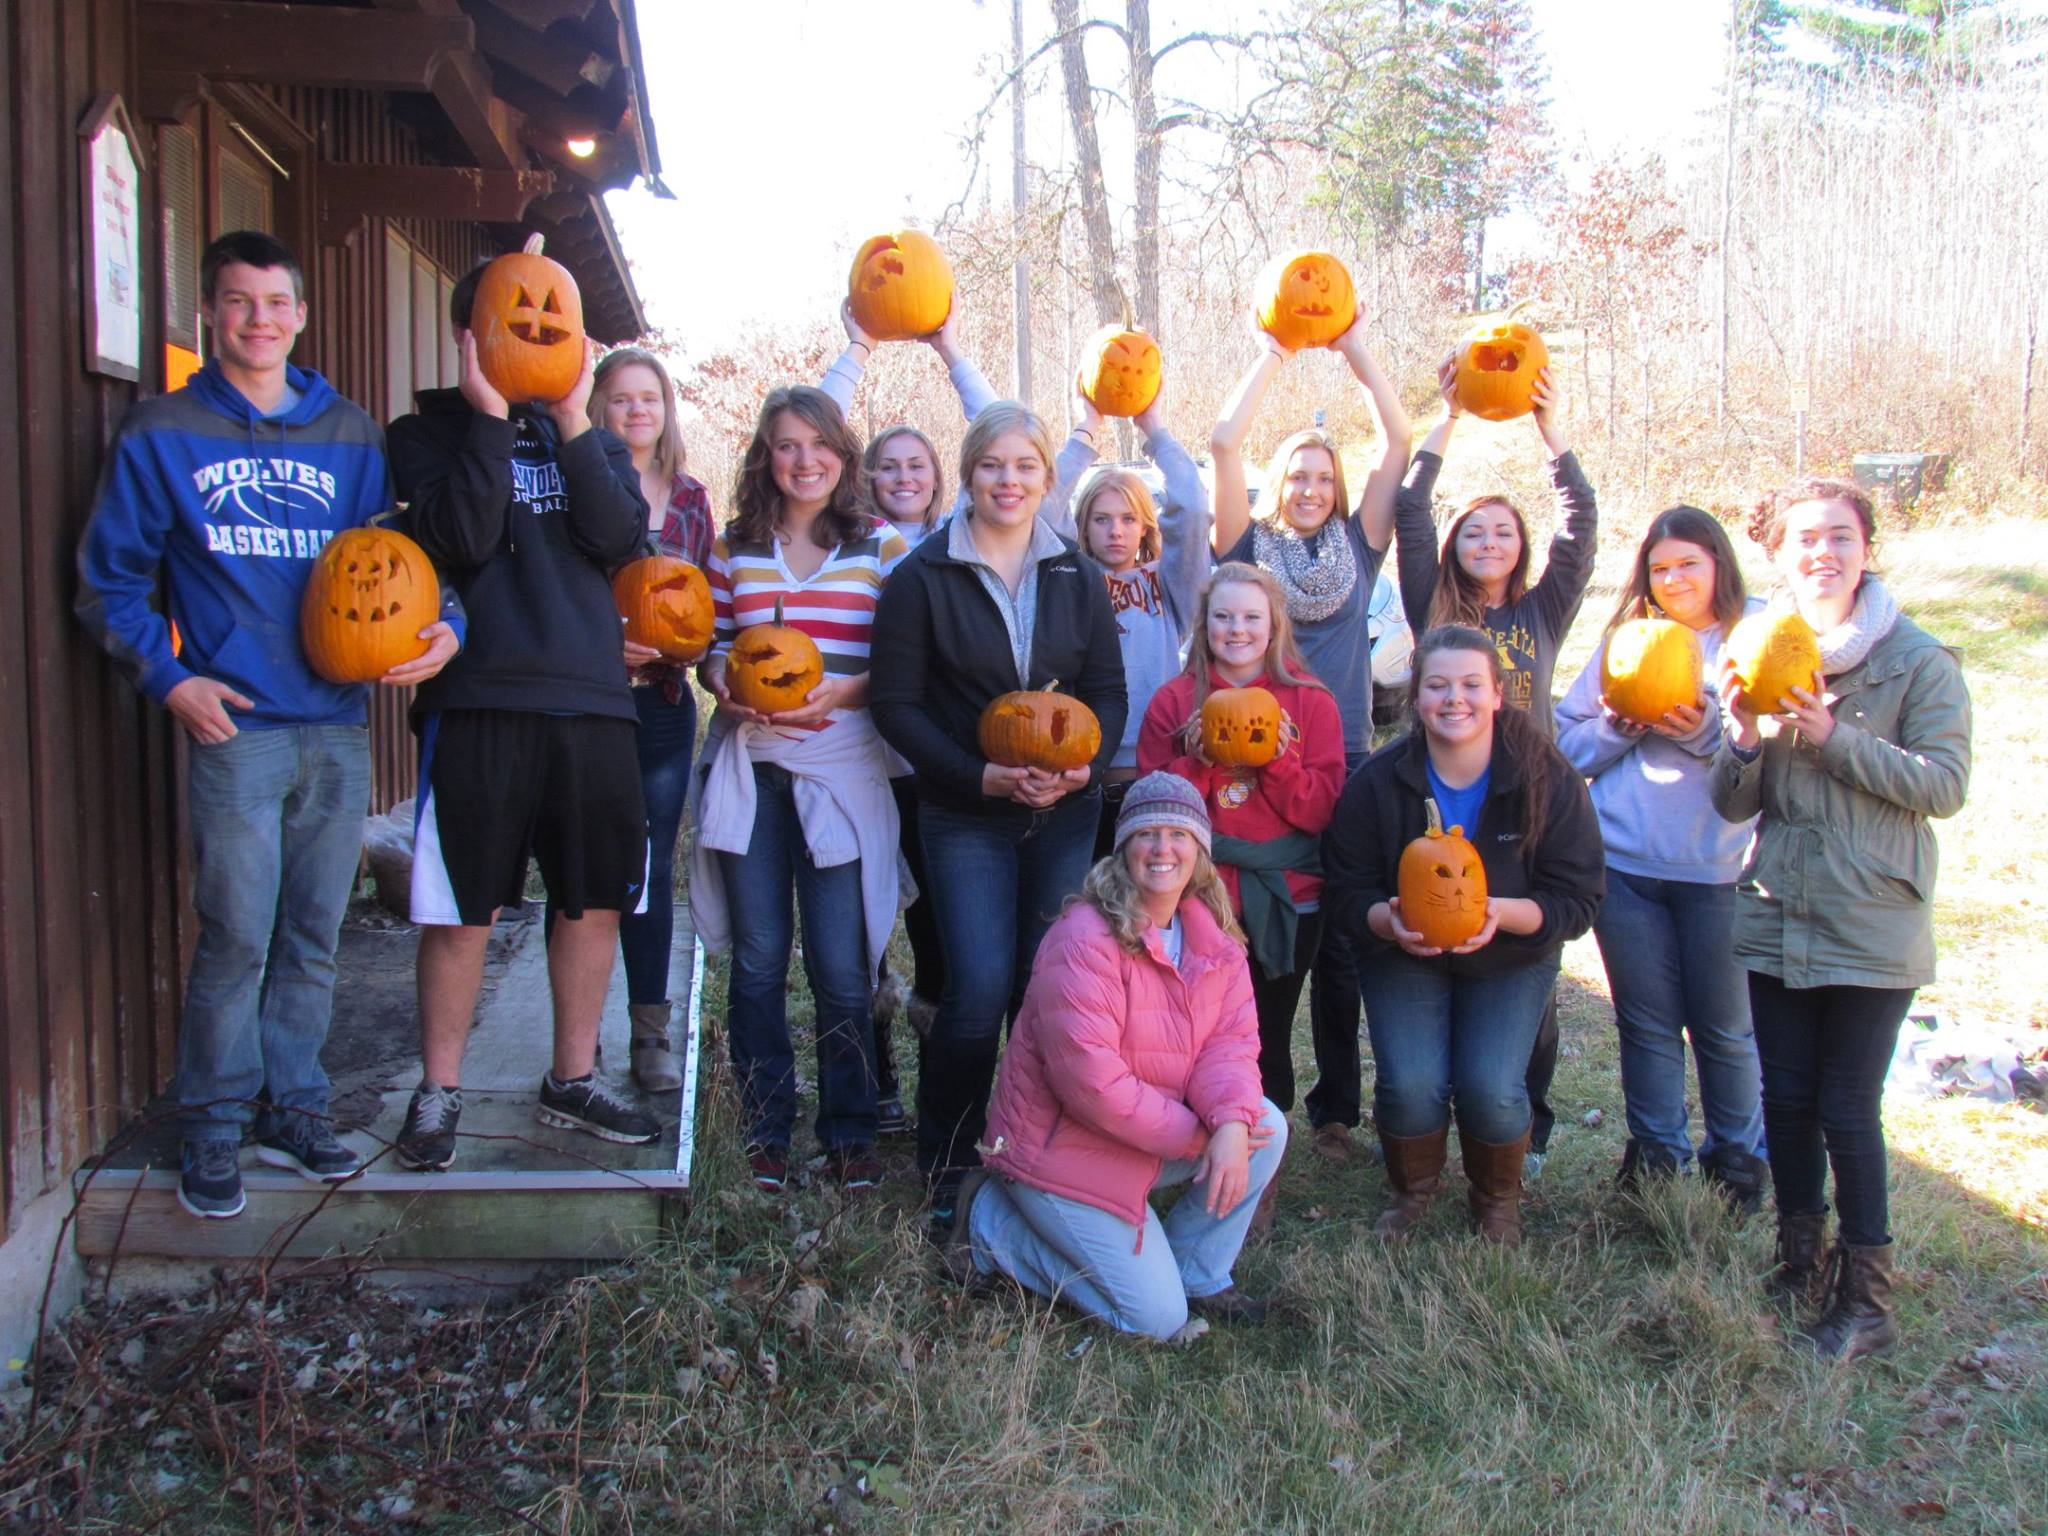 group of students at a halloween event all holding pumpkins